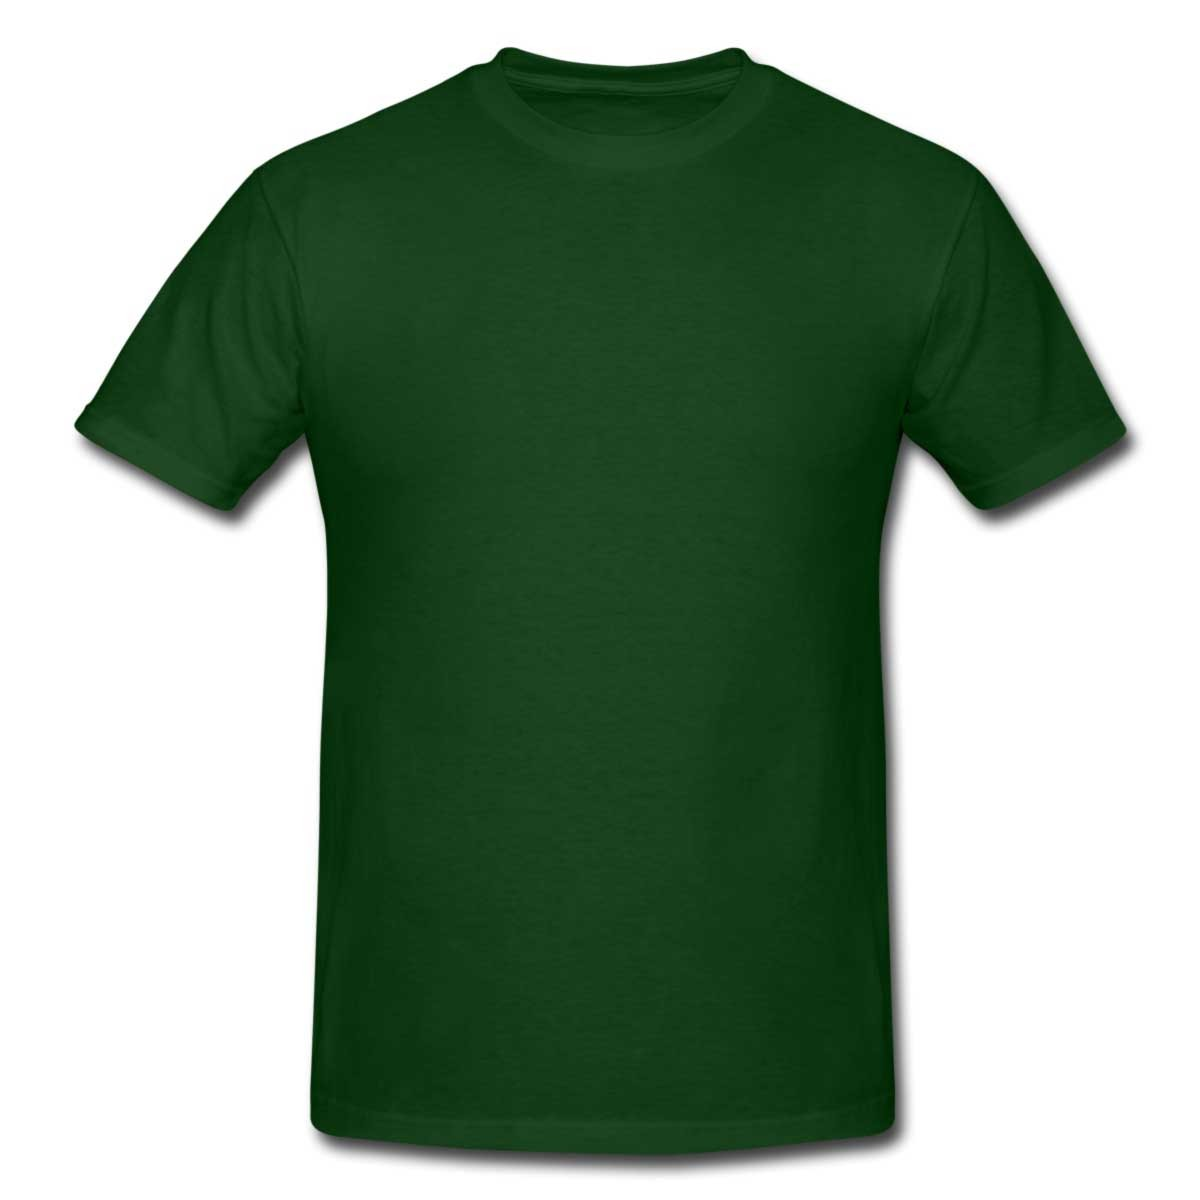 green t shirt clipart best